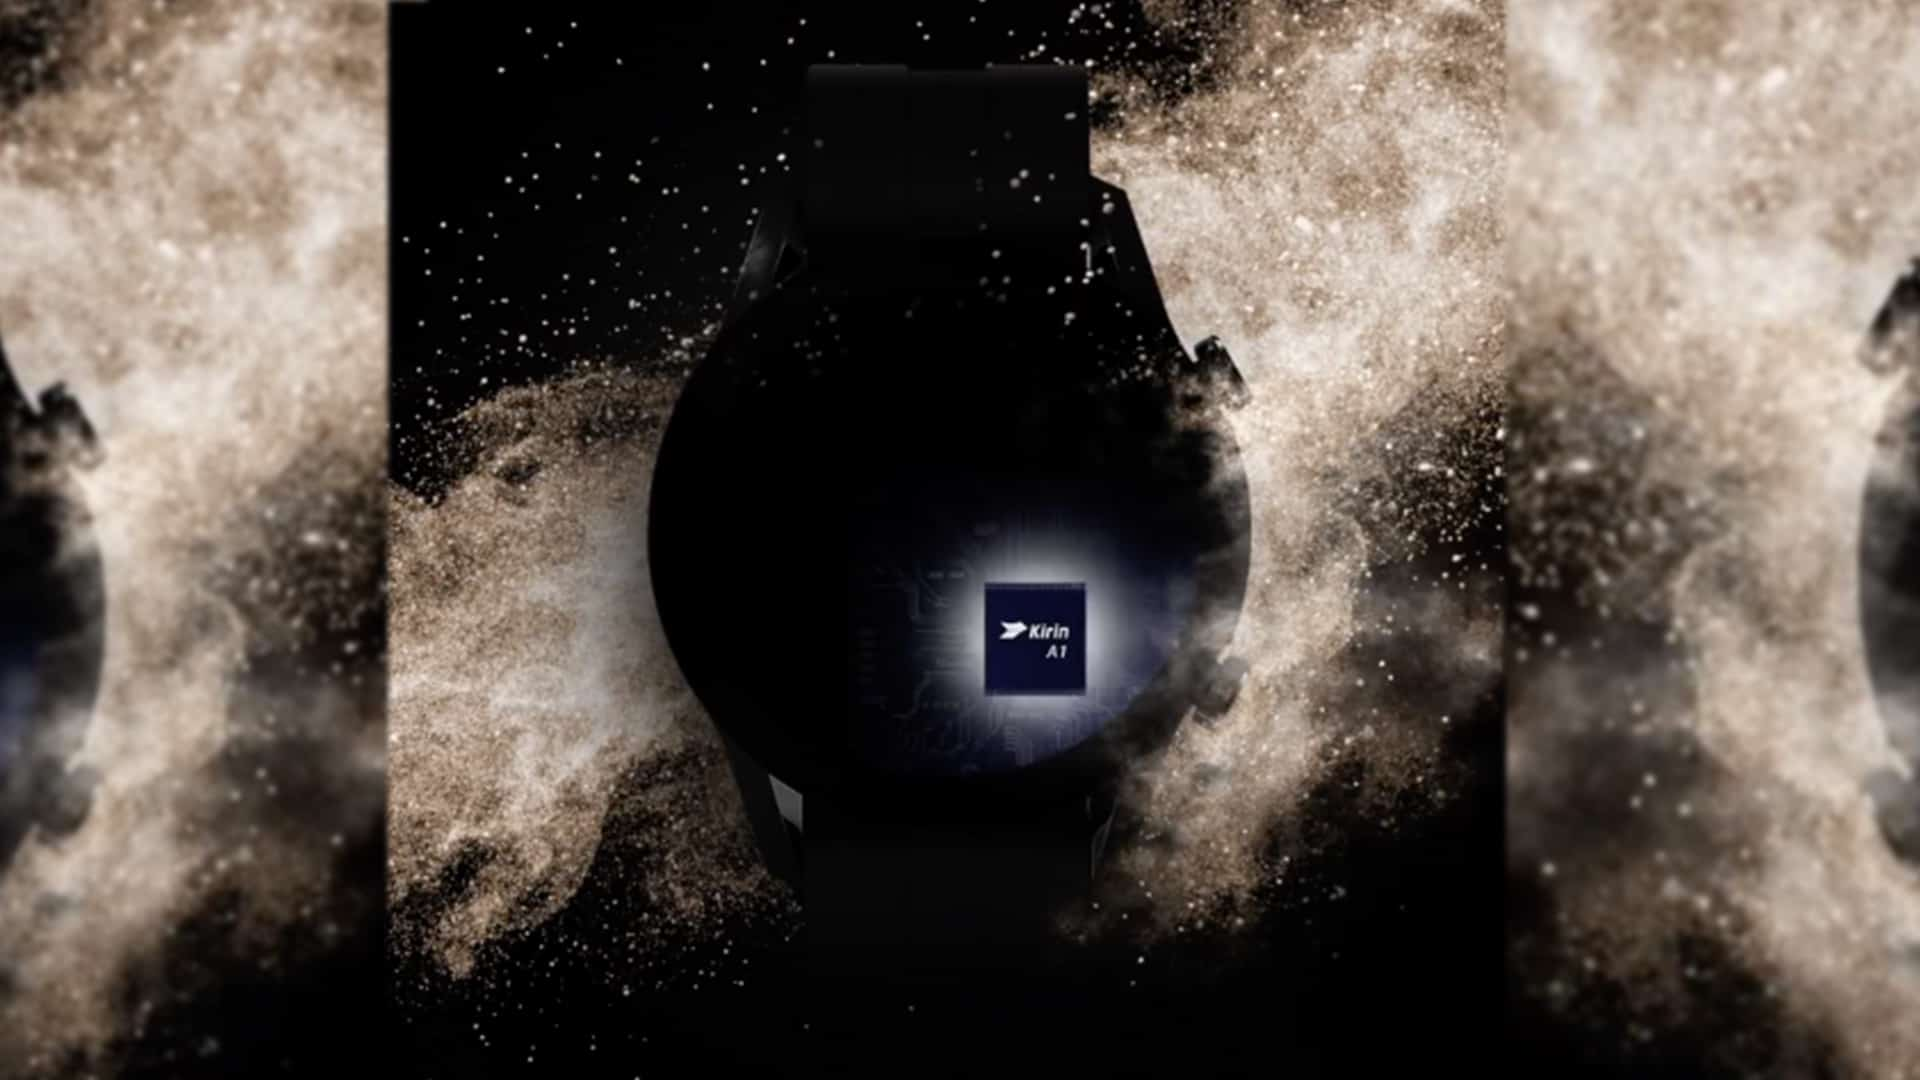 Huawei Watch GT 2 with Kirin A1 set to launch on 19th September